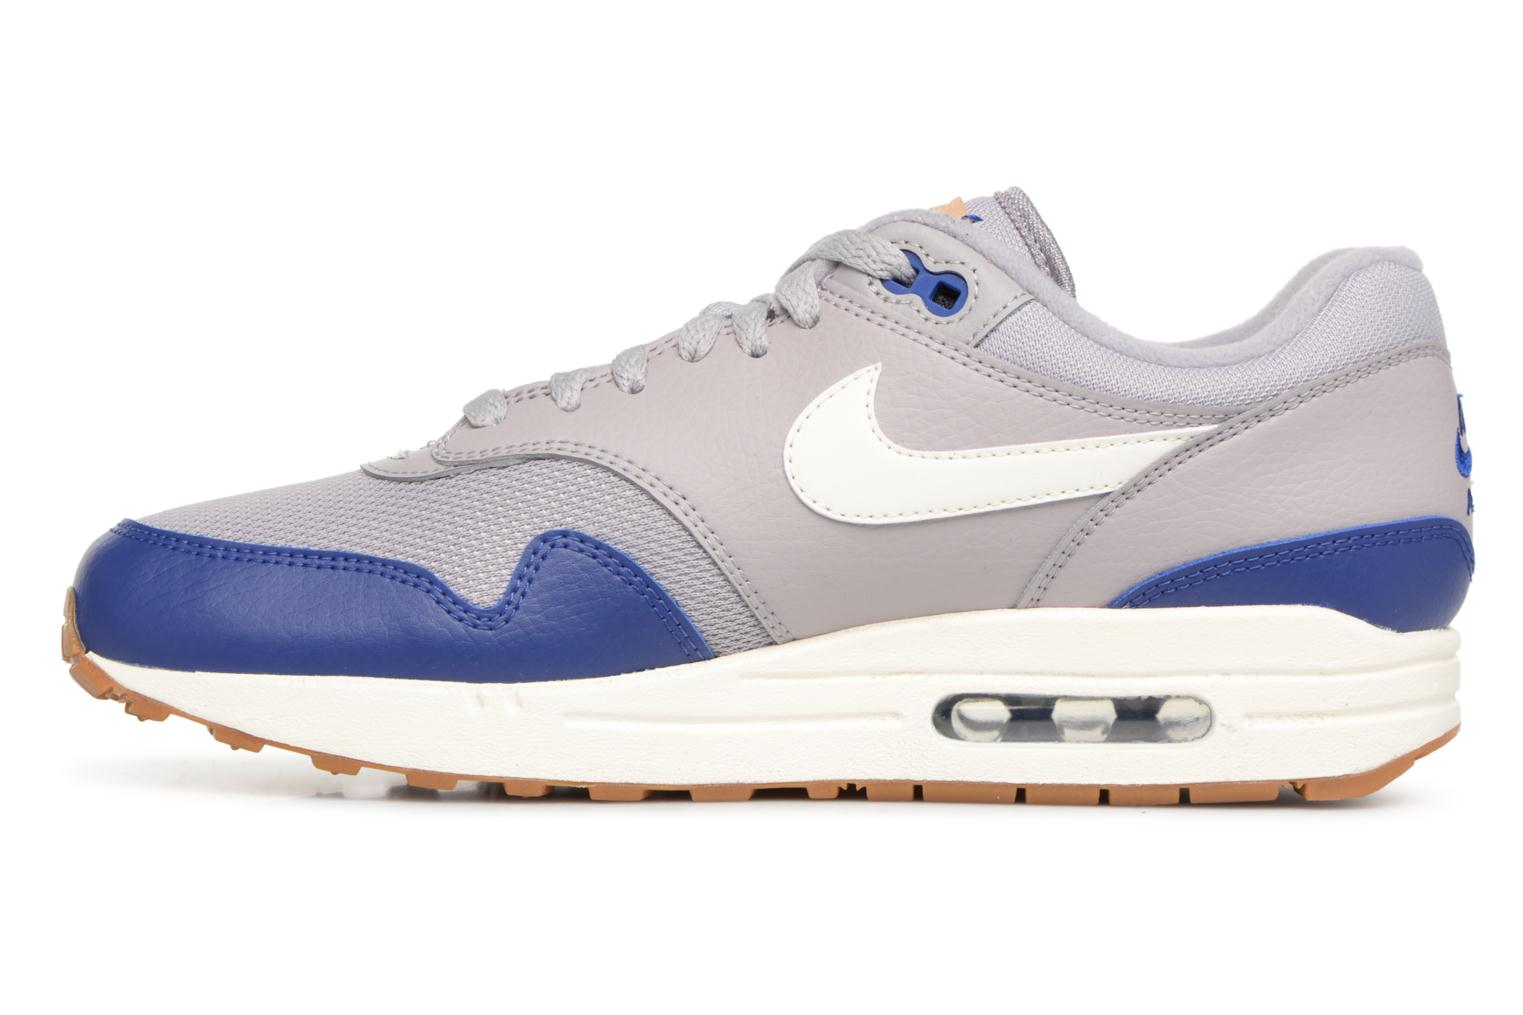 Max 1 Blue Atmosphere sail Air Nike Grey deep Royal wO0P8nk